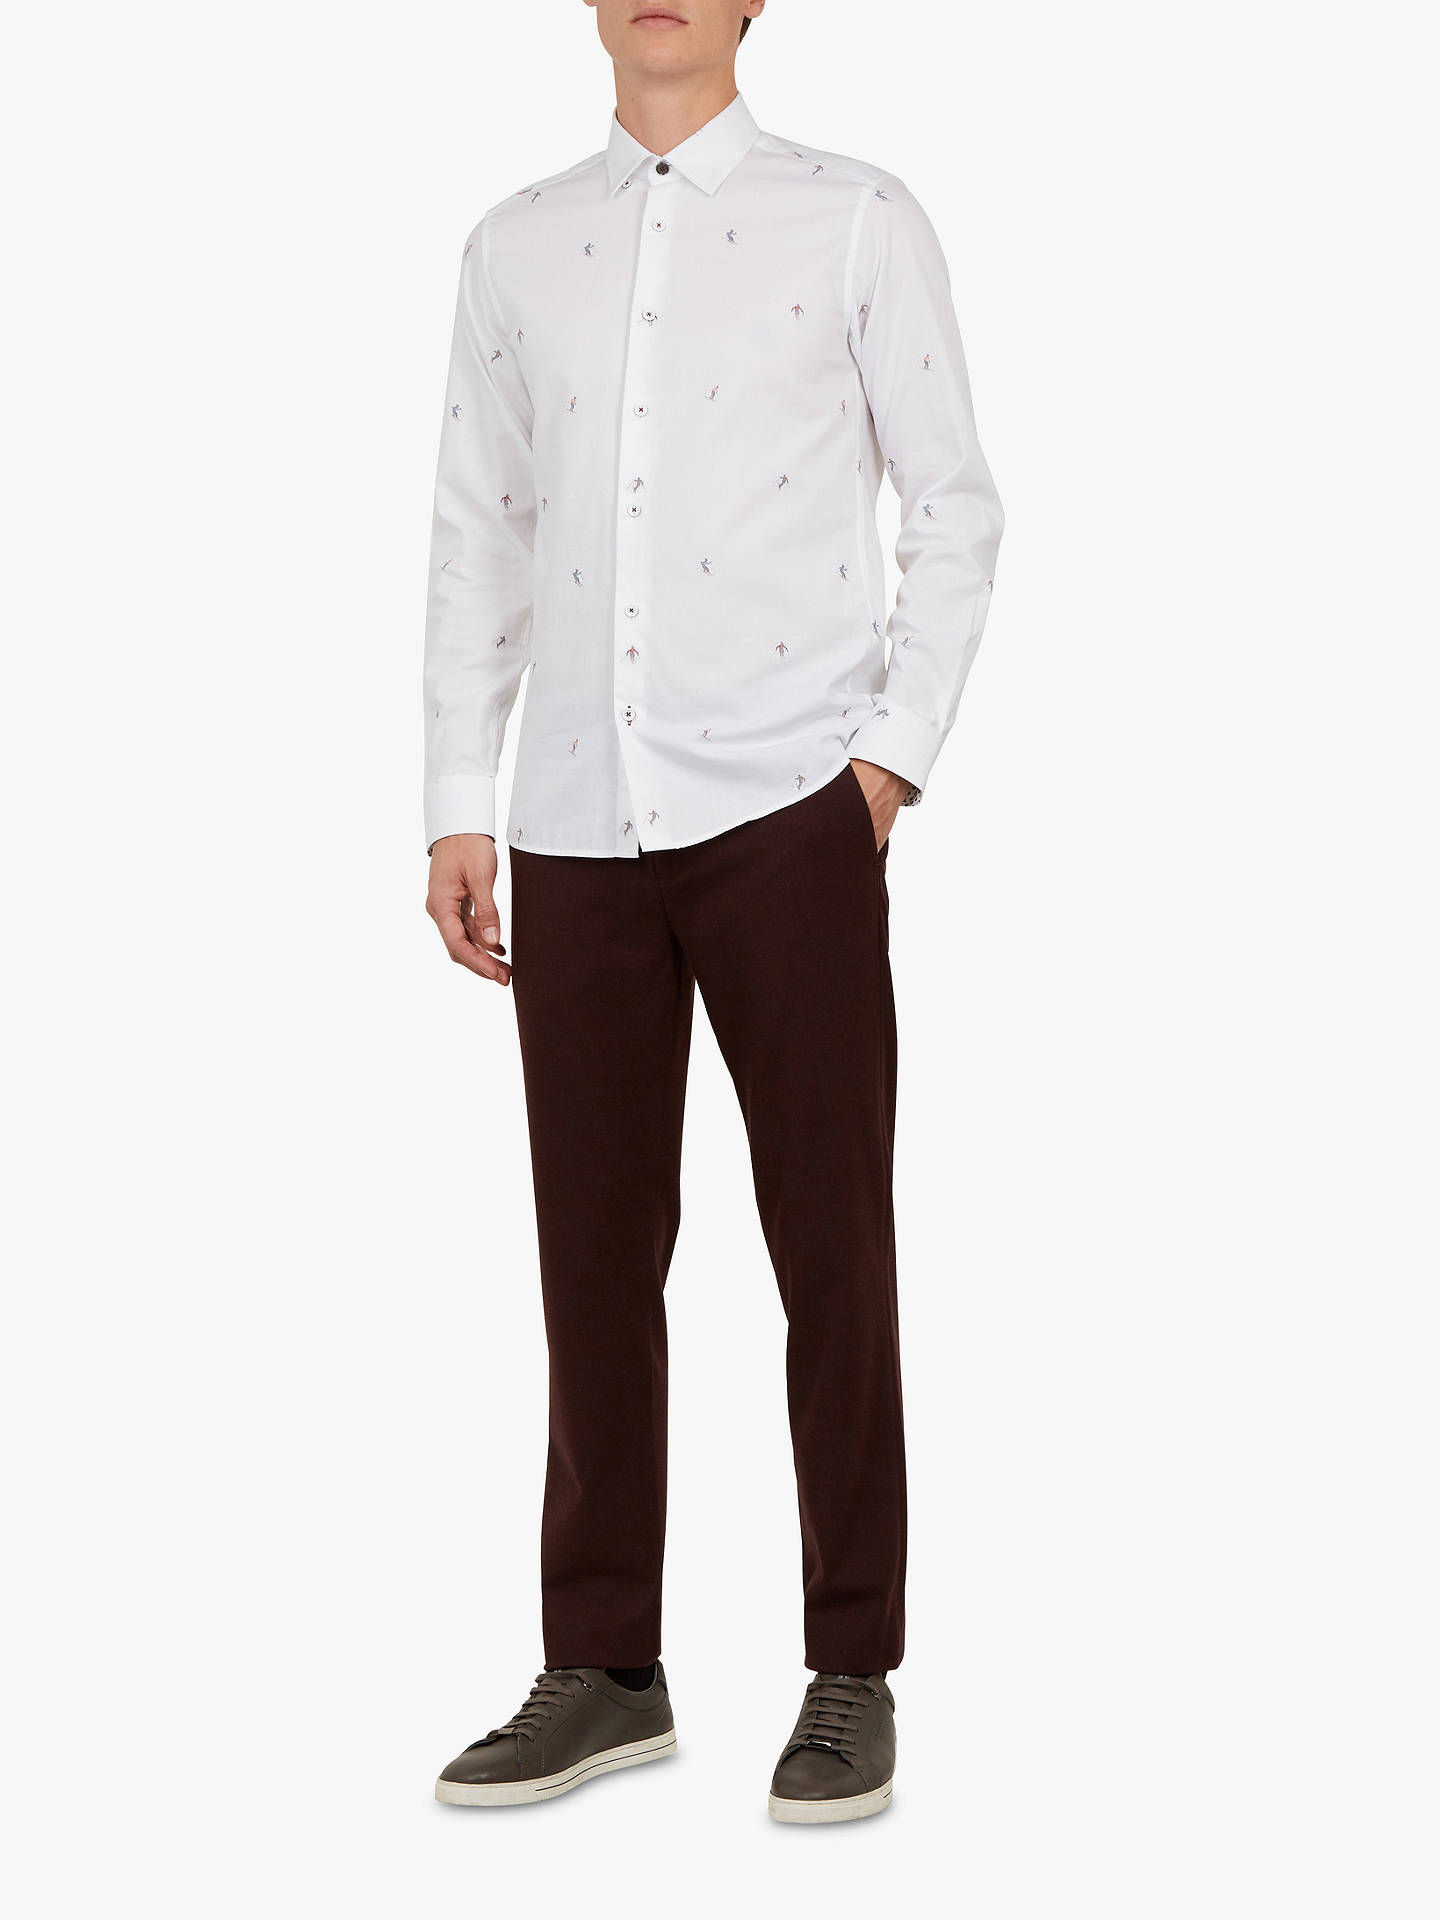 BuyTed Baker Weyman Trousers, Dark Red, 32S Online at johnlewis.com